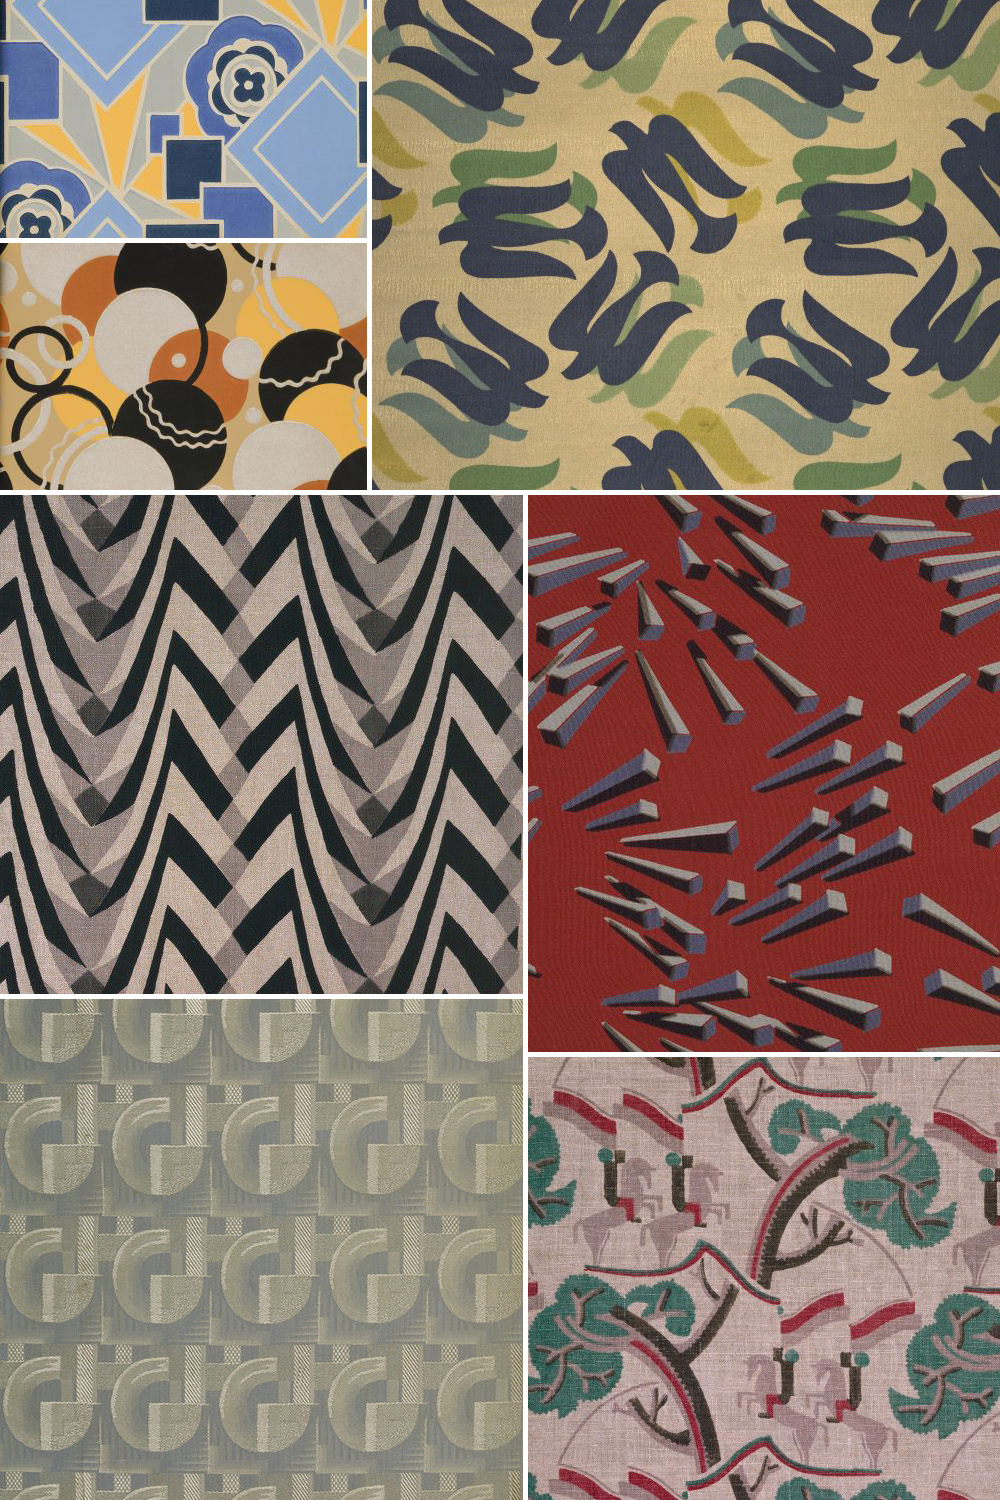 Design Art History Of Surface Design: Art Deco - Pattern Observer